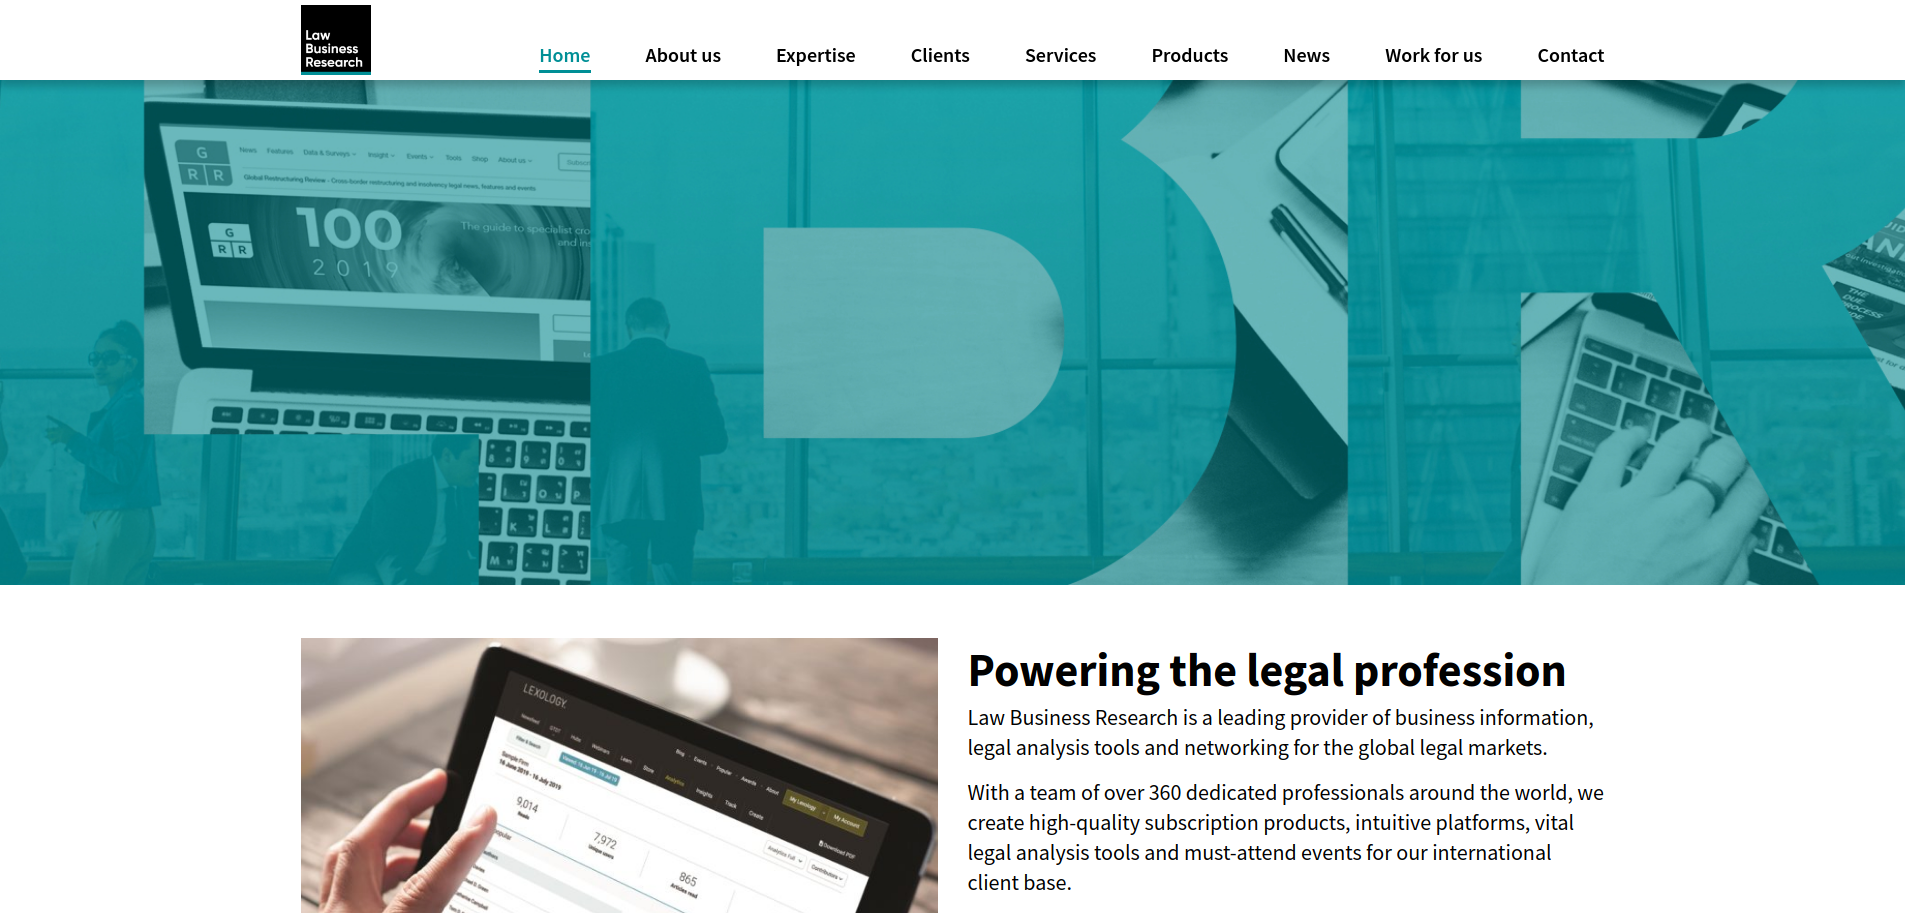 Law Business Research homepage